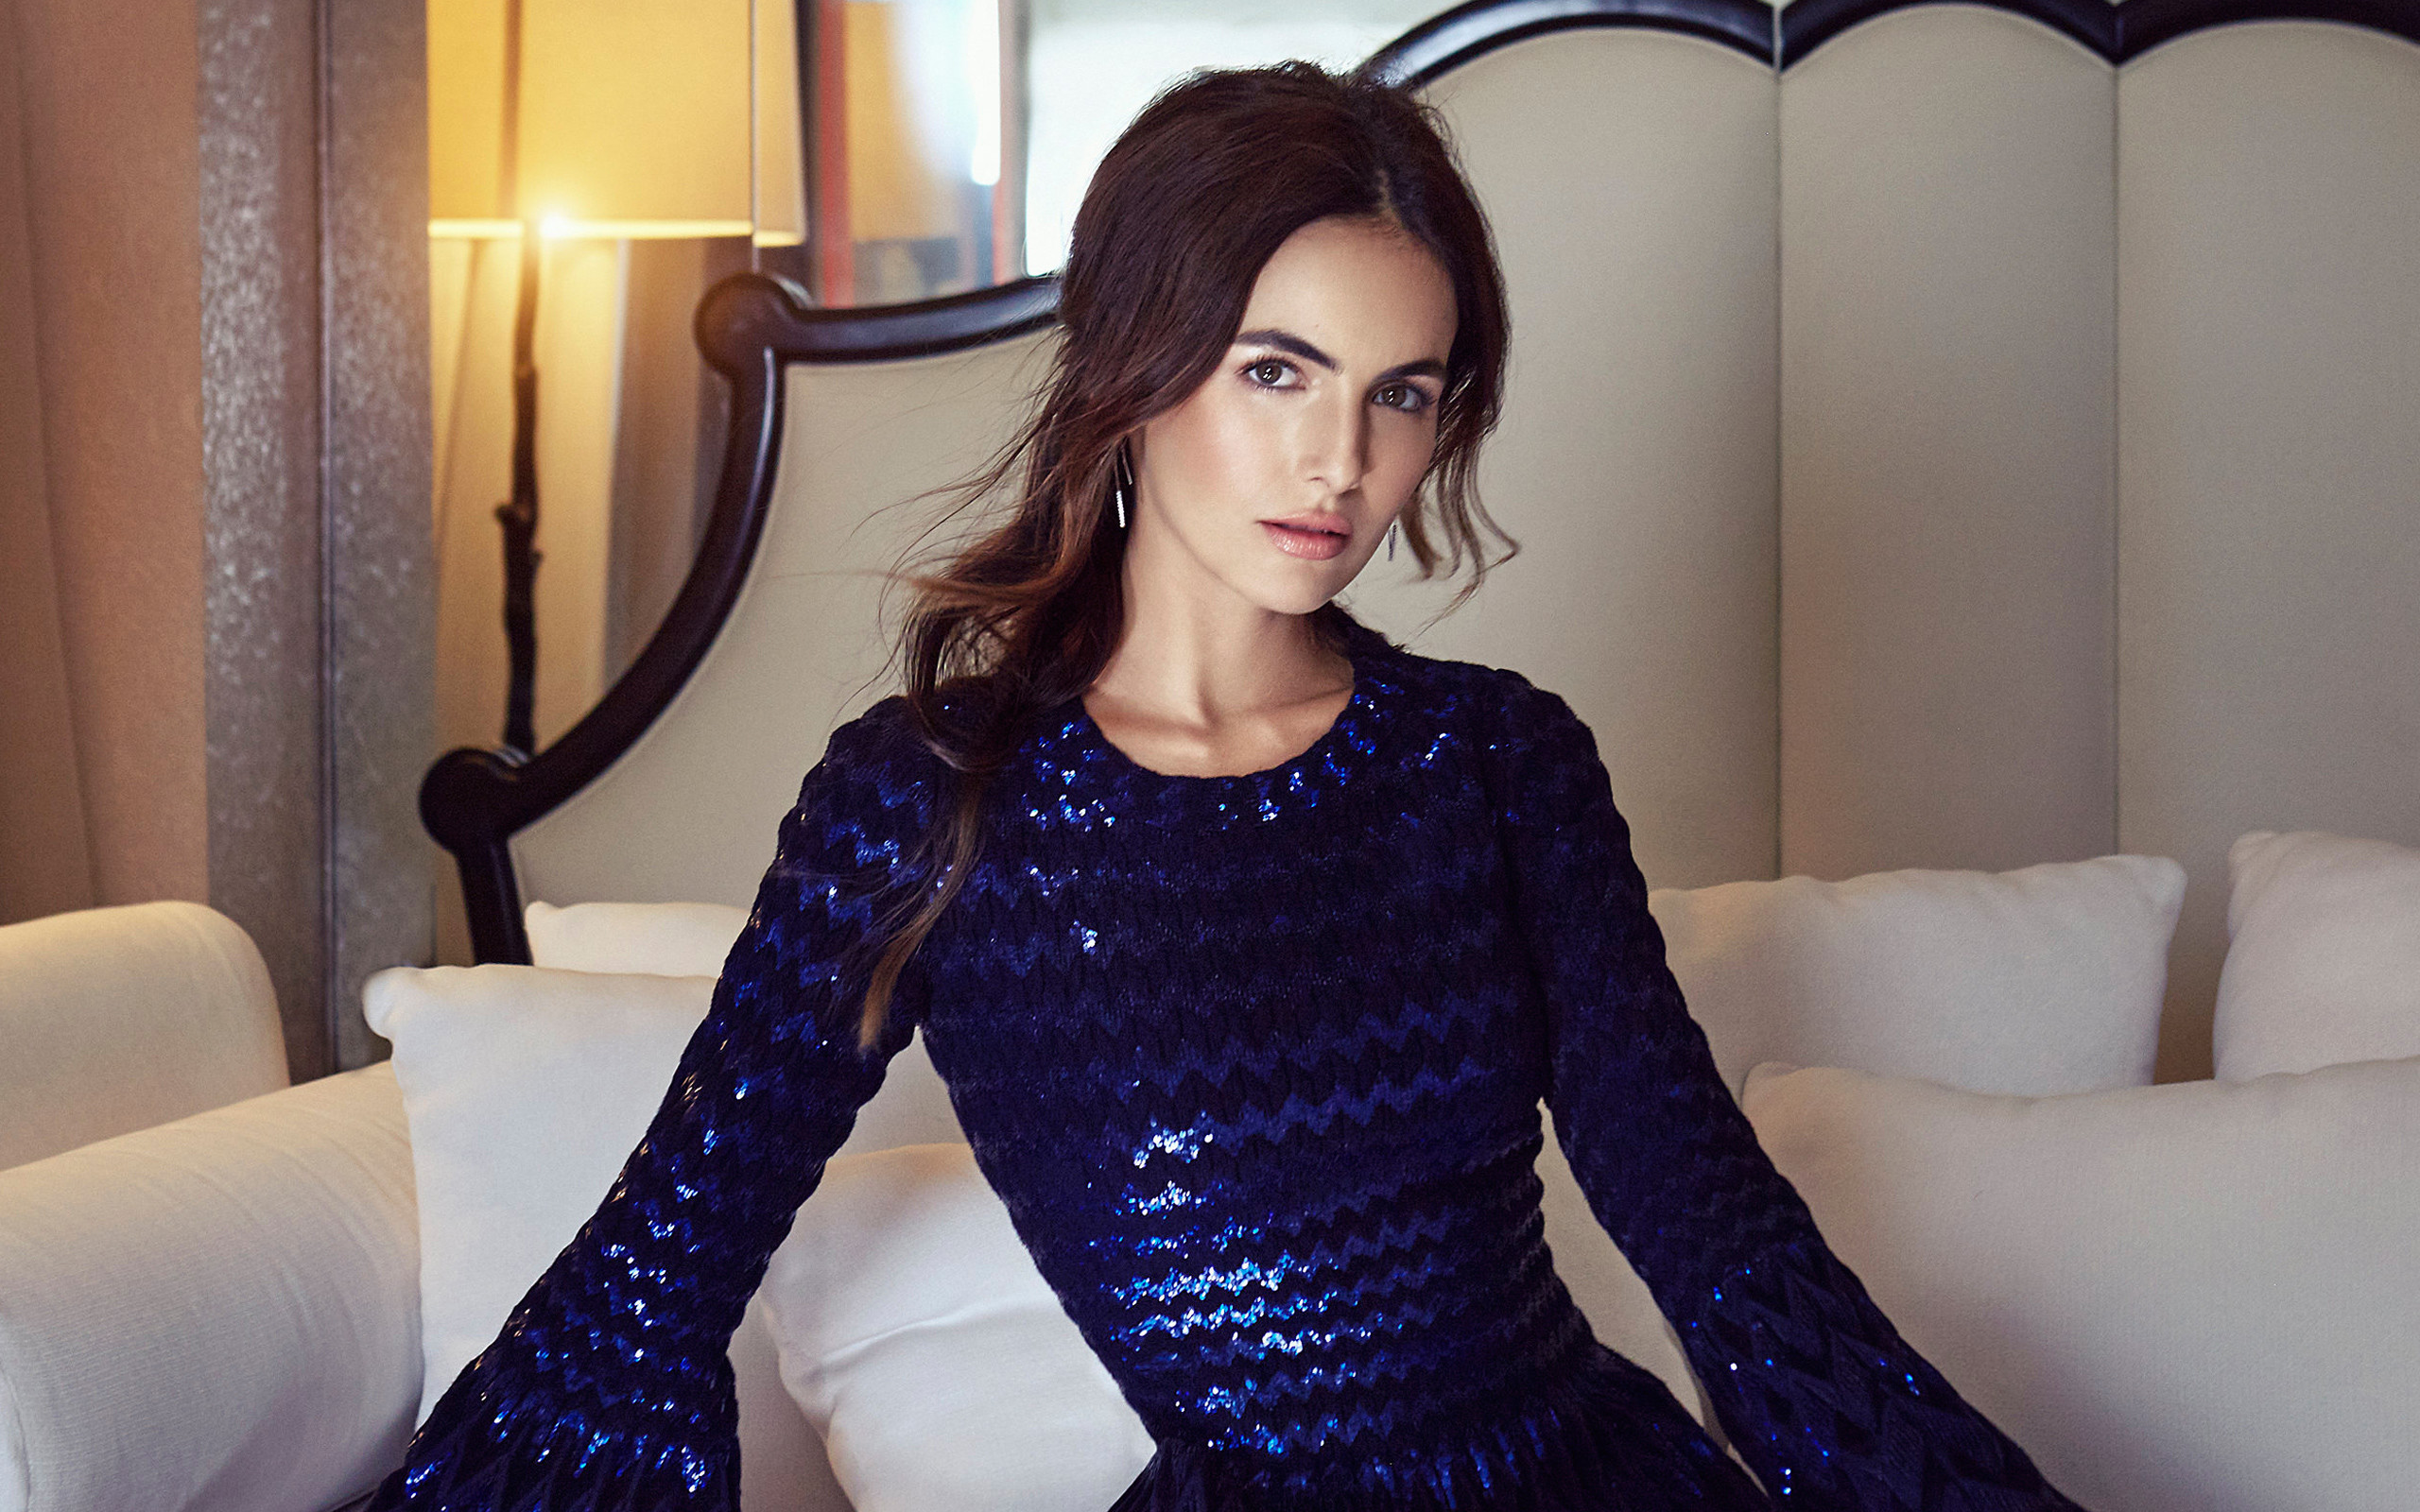 Res: 2560x1600, Tags: American Camilla Belle ...